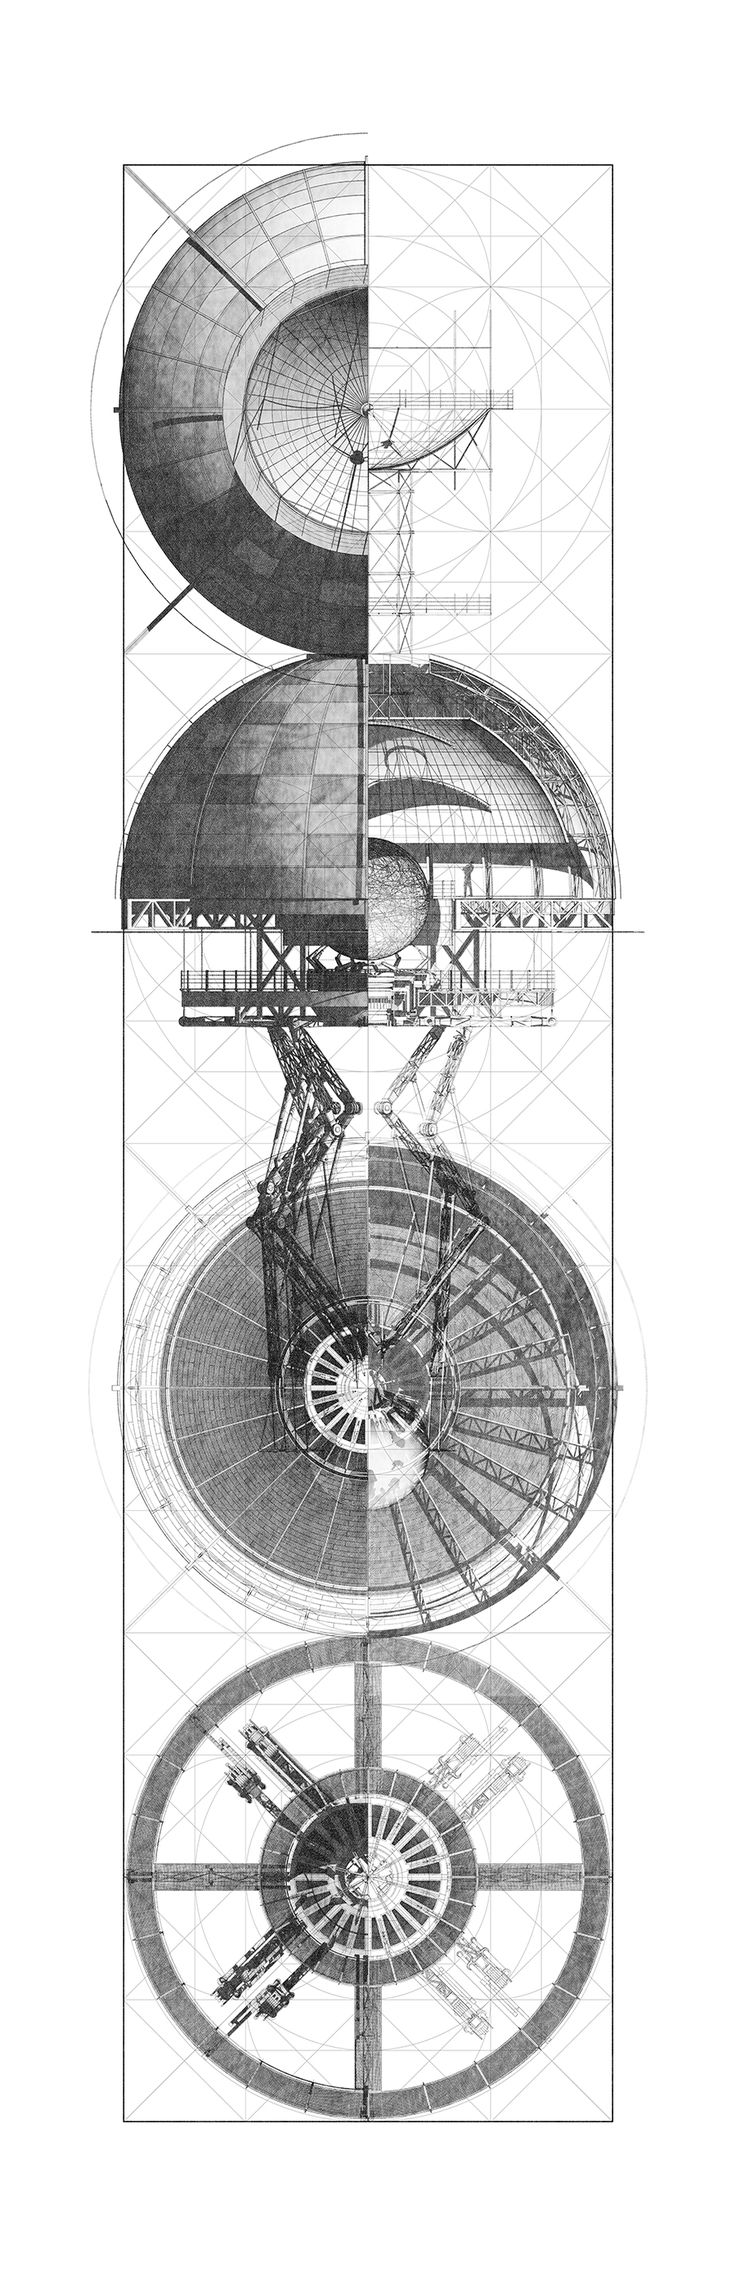 Orthographic depictions of Scaling action :: Student: Benjamin Ruswick - University: Harvard Graduate School of Design, Location: Cambridge, Massachusetts, United States. [ Thesis ] M.Arch // C.A. Denari's Inverted Observatory